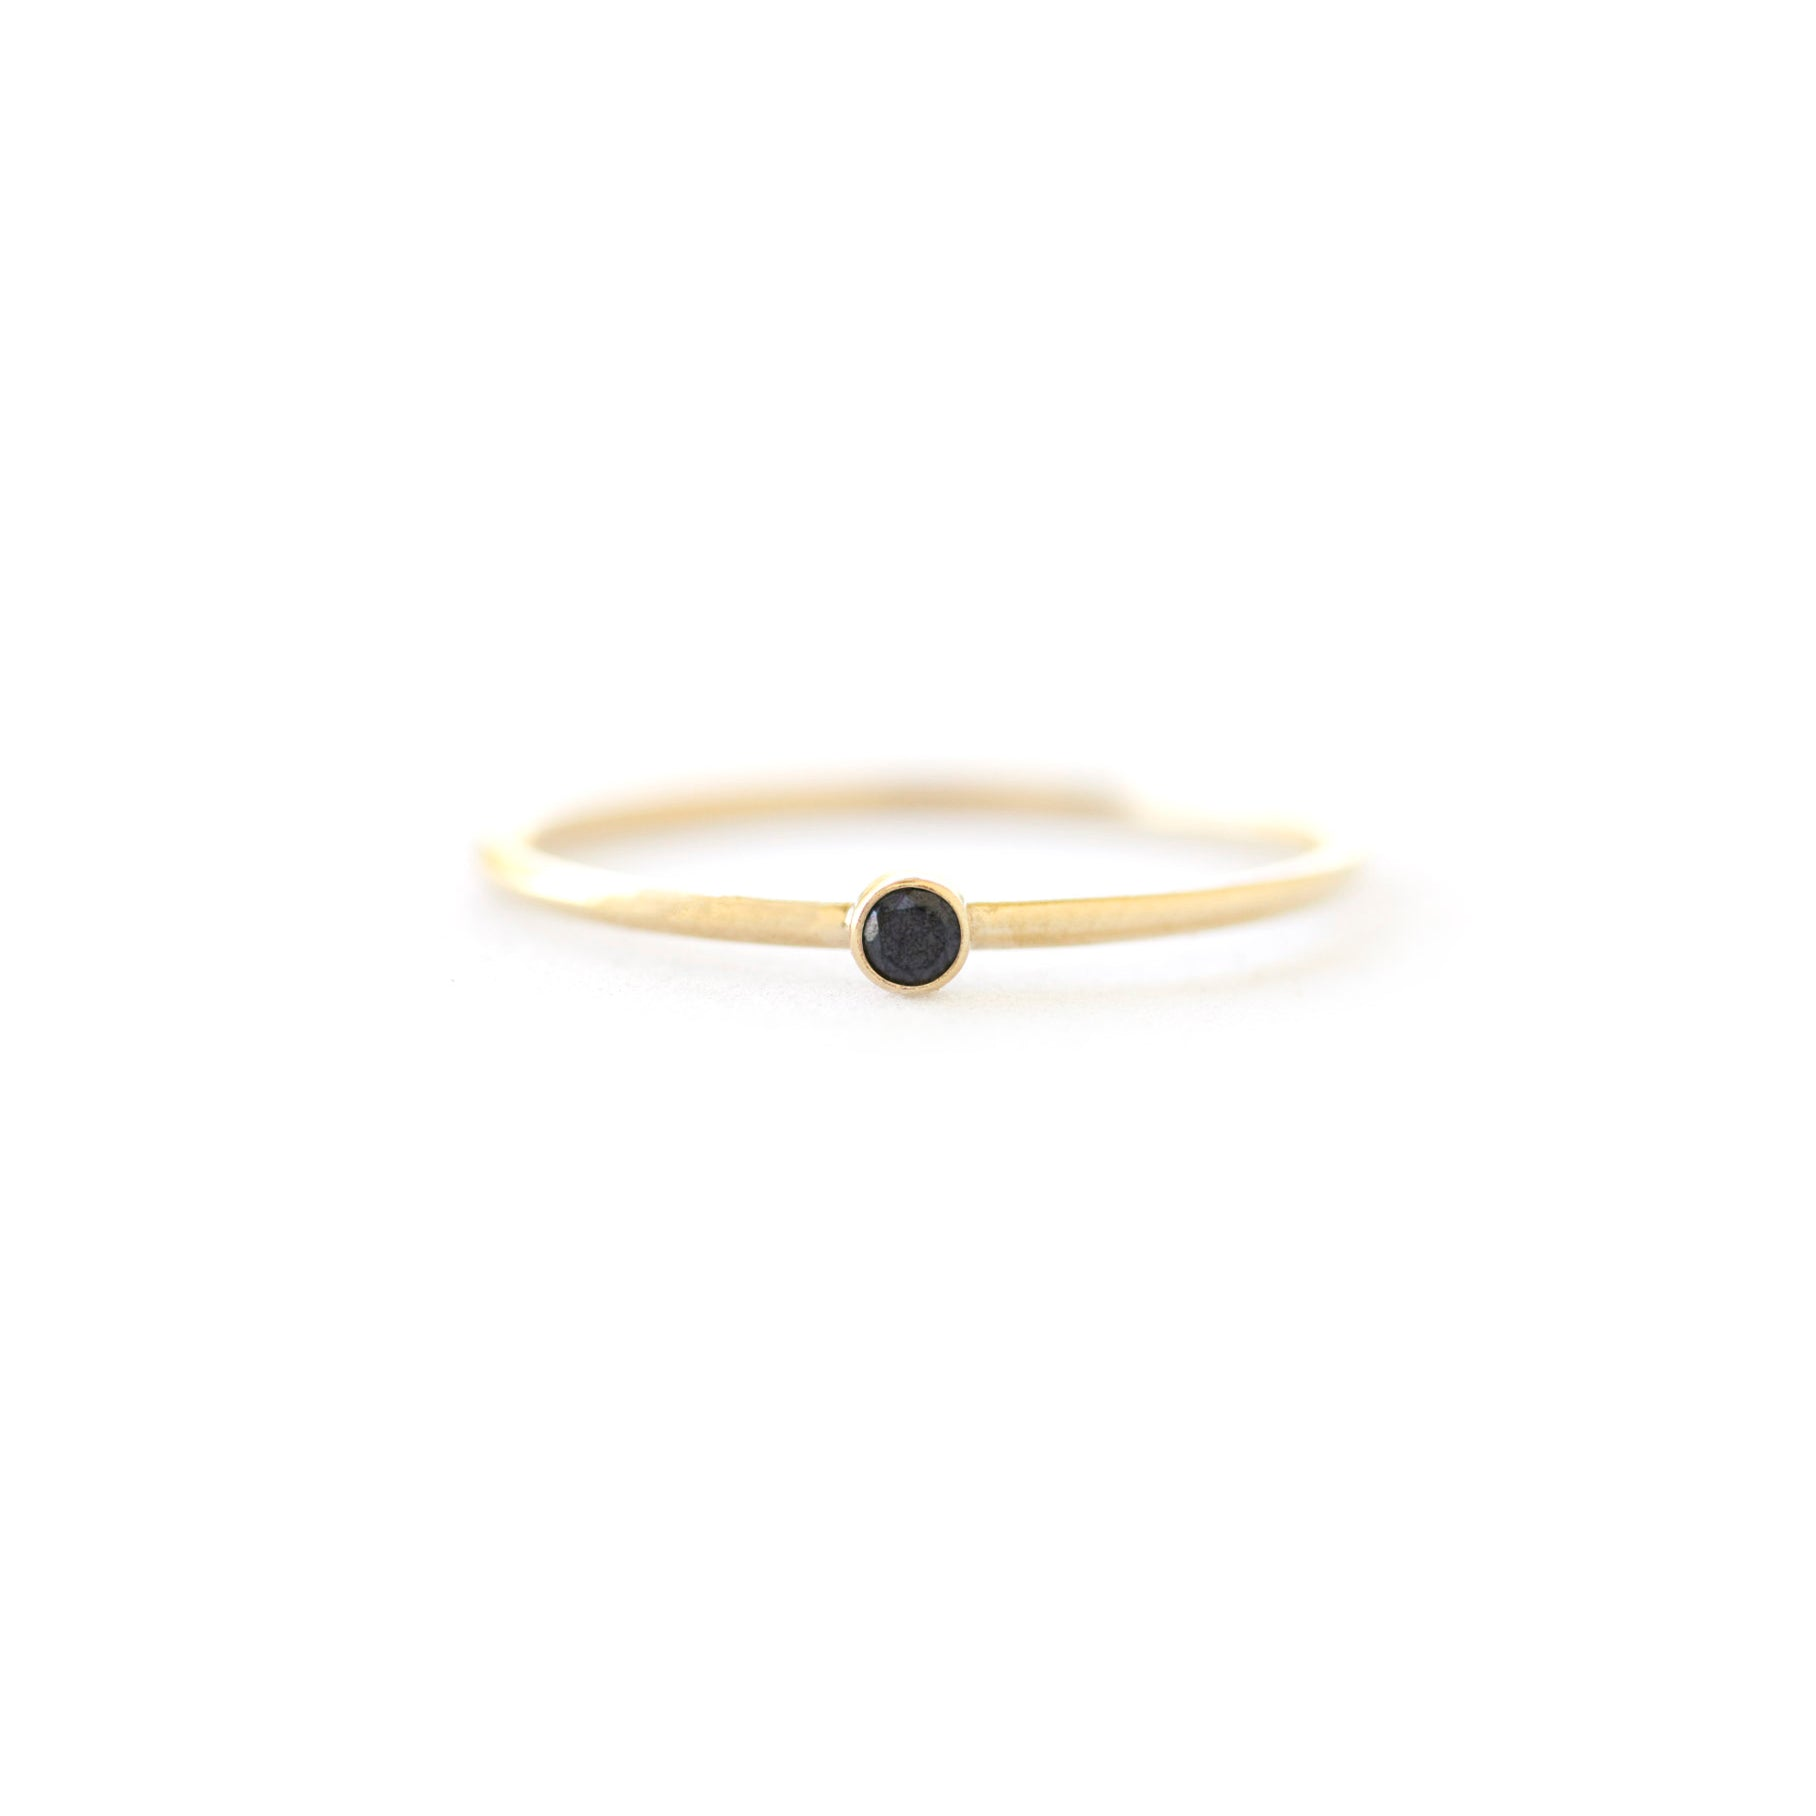 Cubic Zirconia Ring - Black